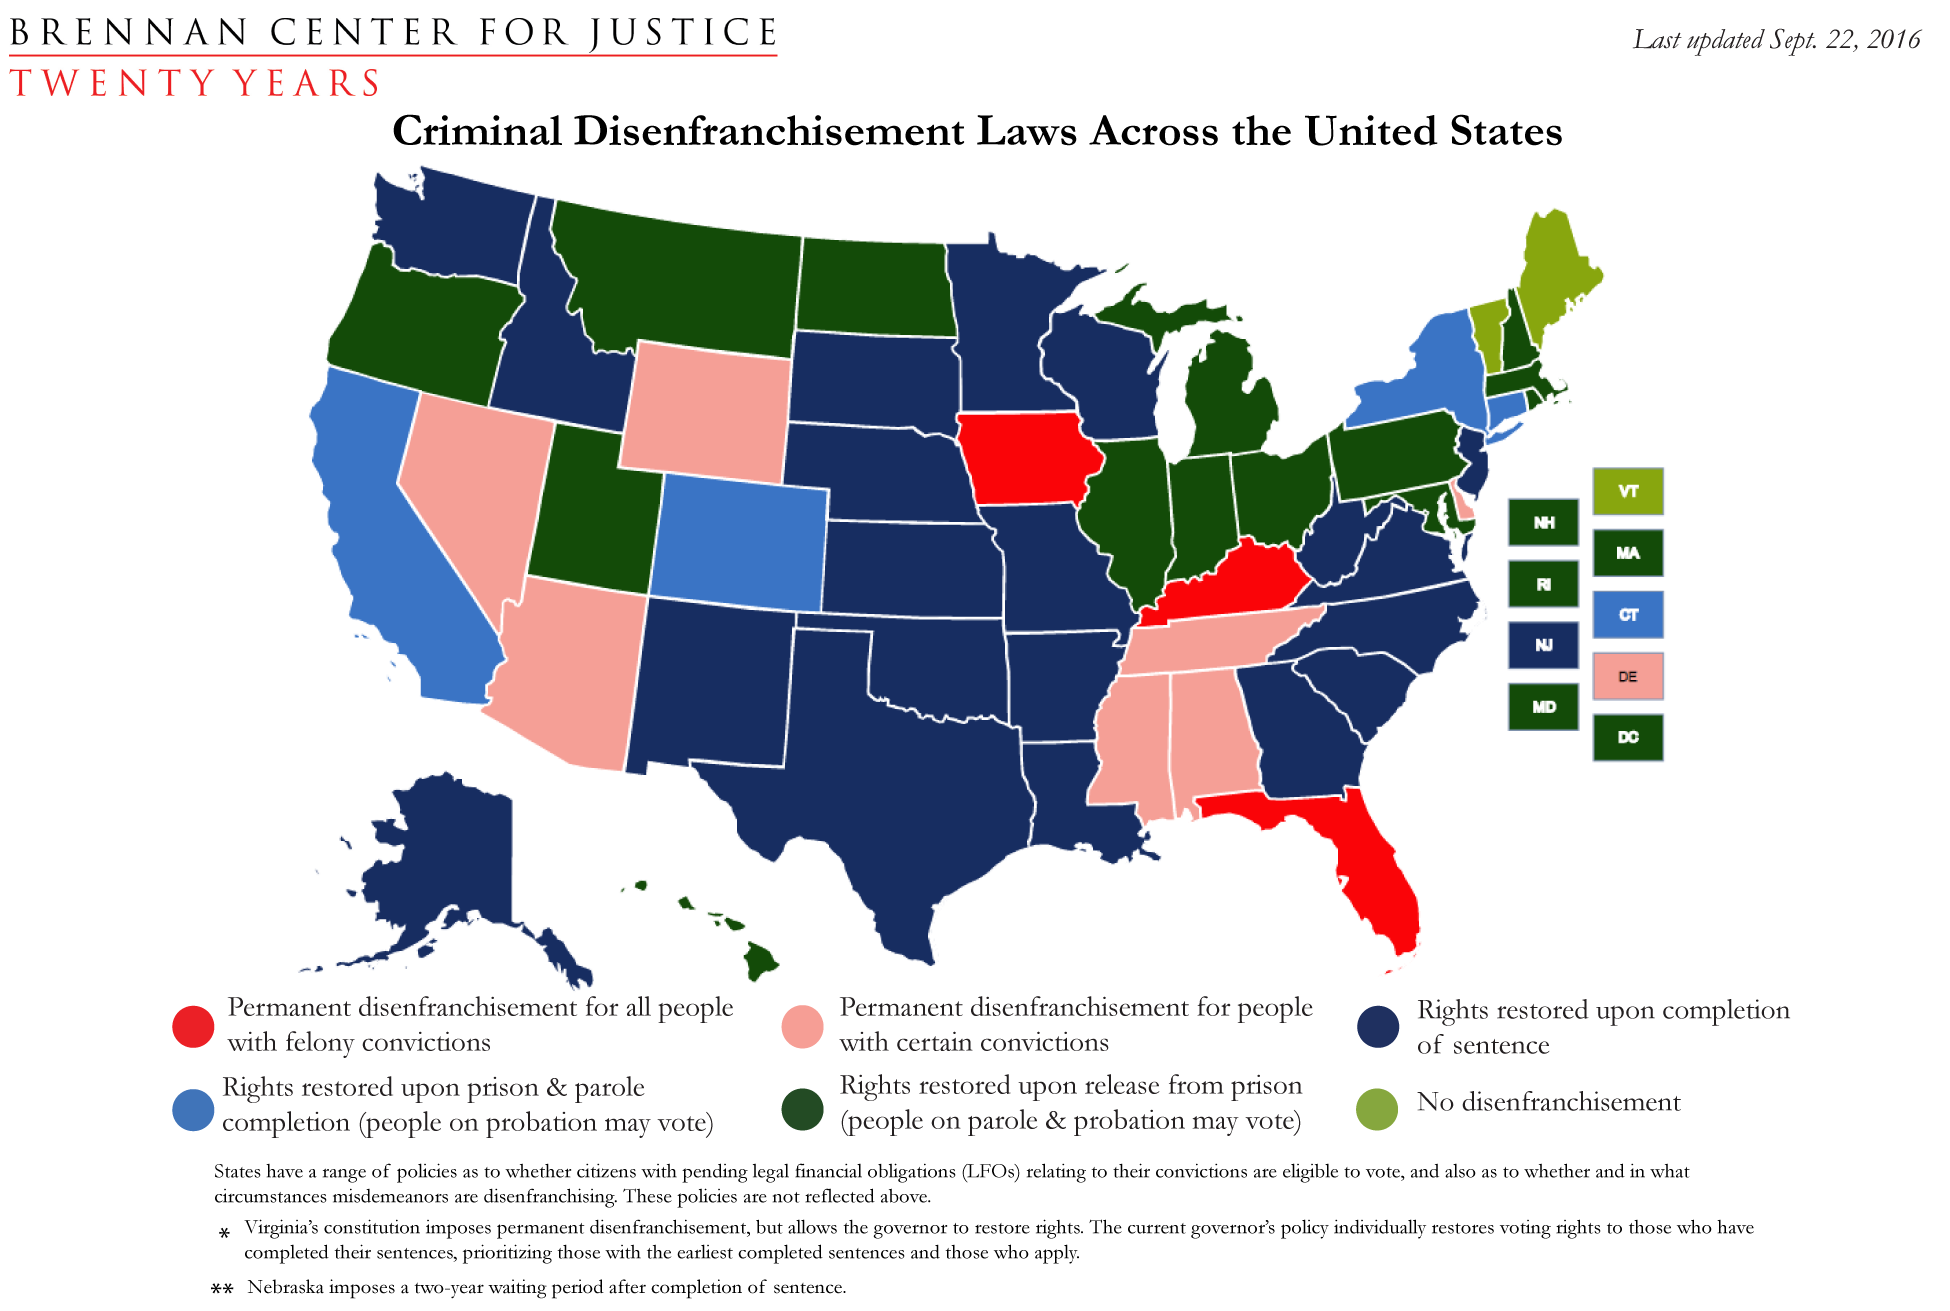 Criminal Disenfranchisement Laws Across The United States - Place the us states on the map